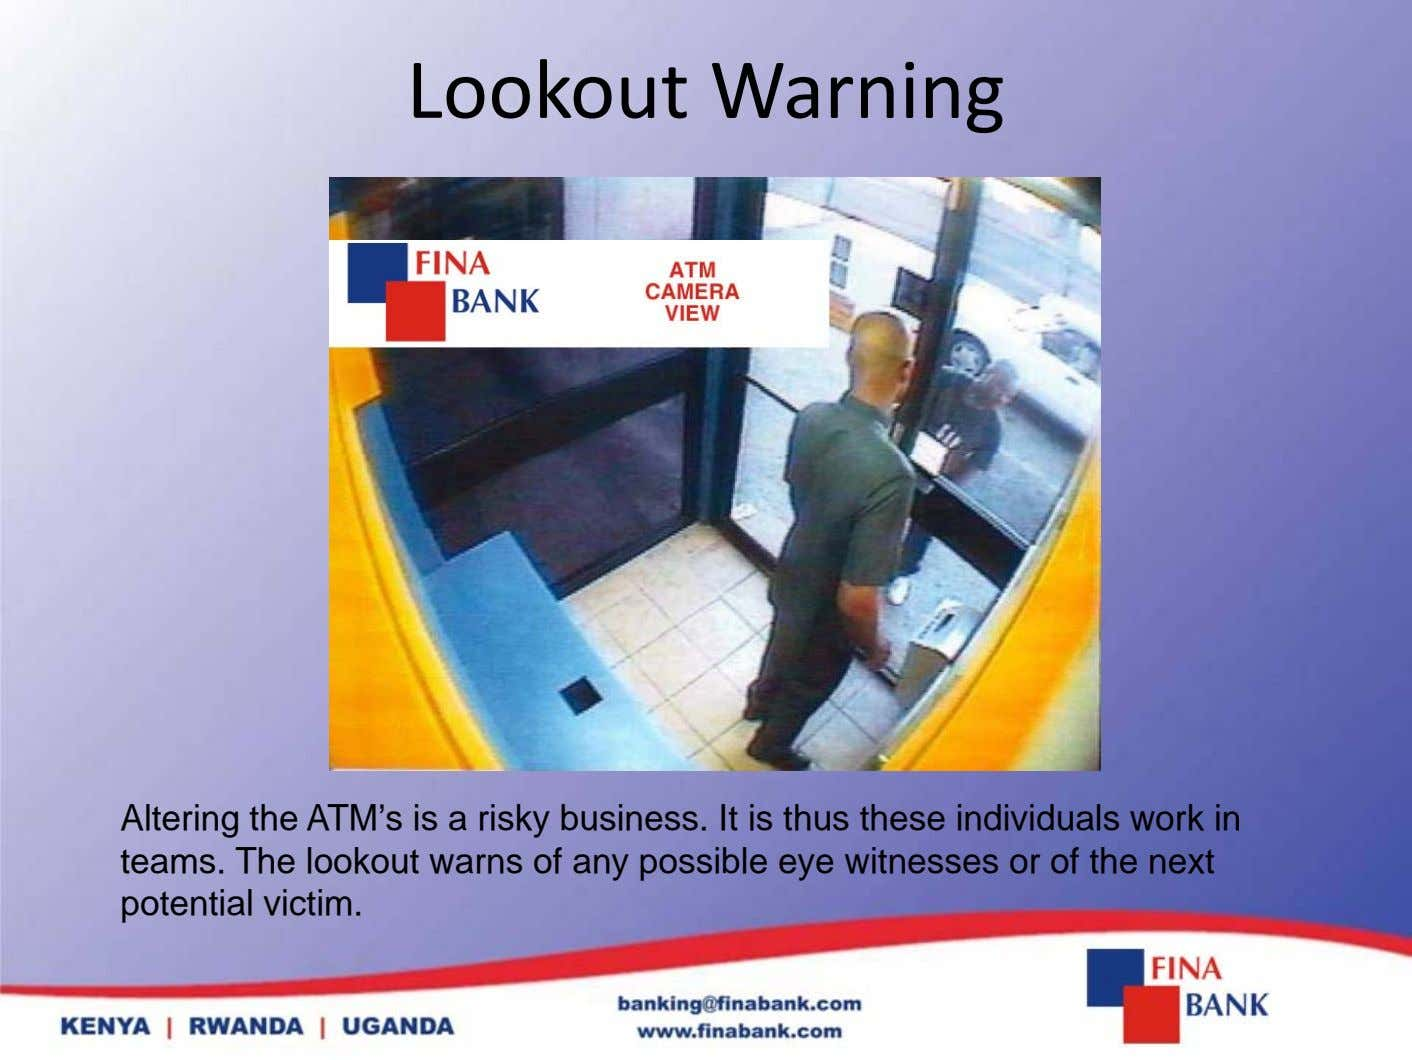 Lookout Warning Altering the ATM's is a risky business. It is thus these individuals work